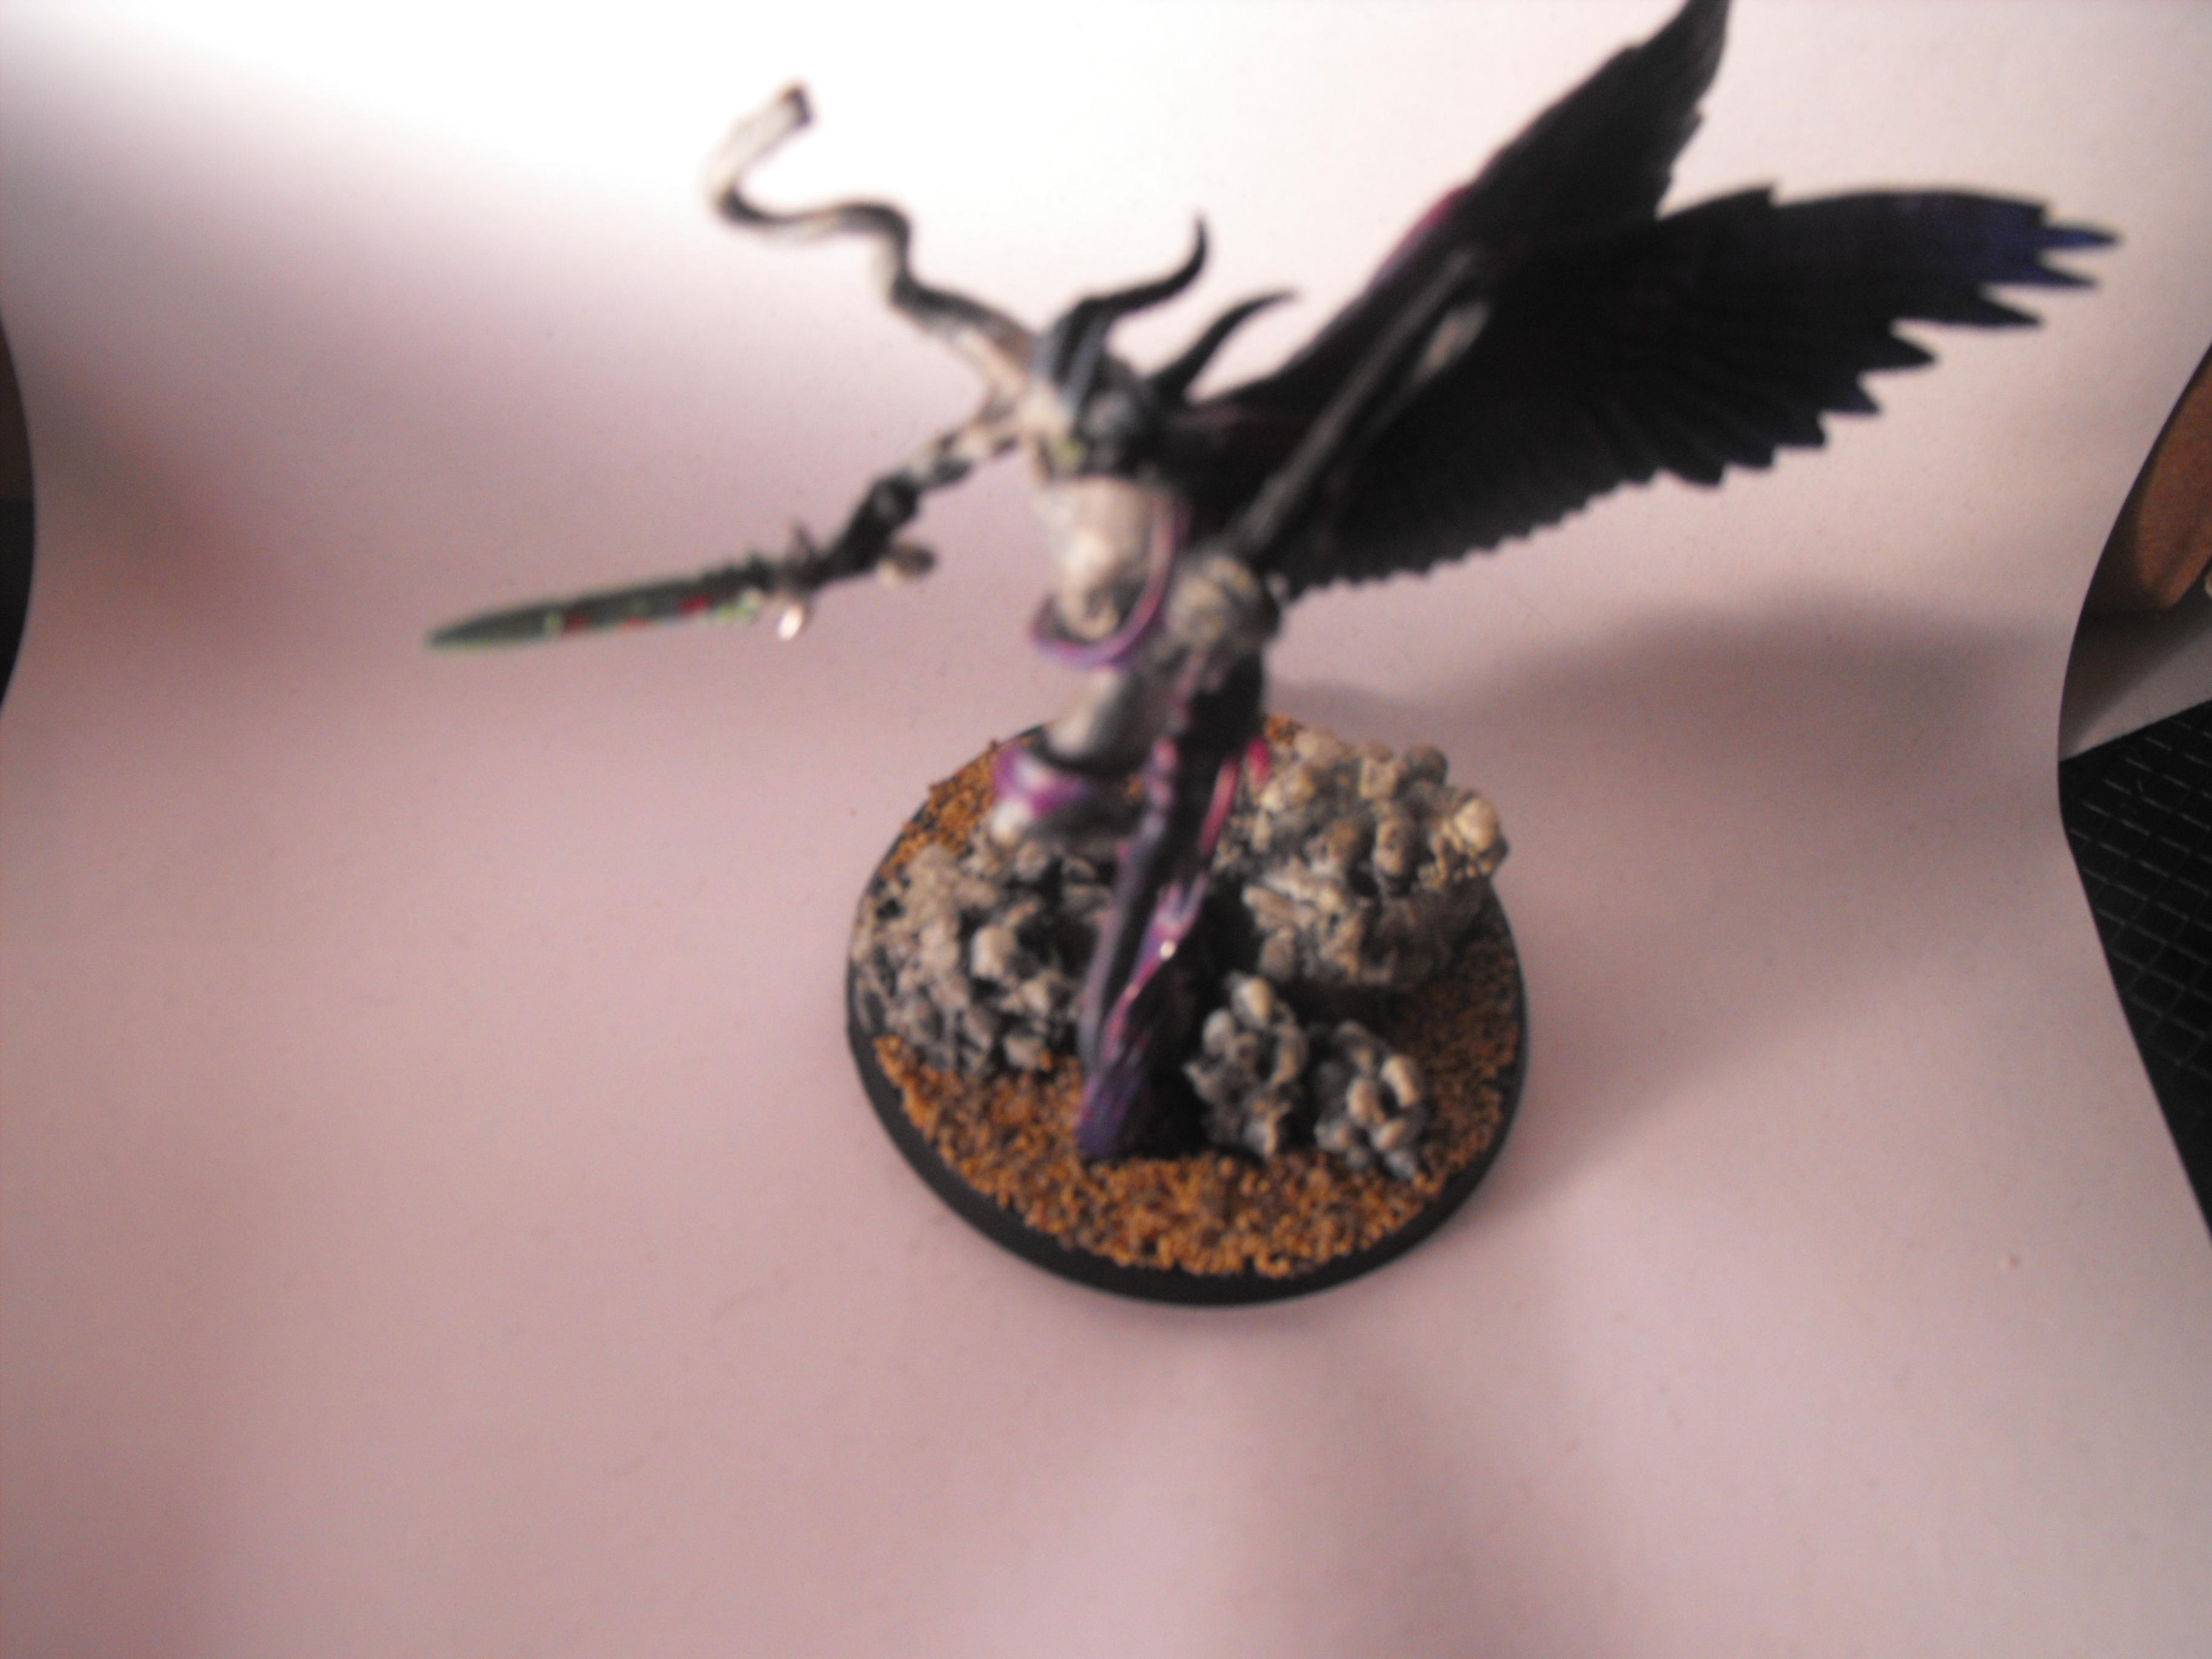 Blurred Photo, A decent picture of the base